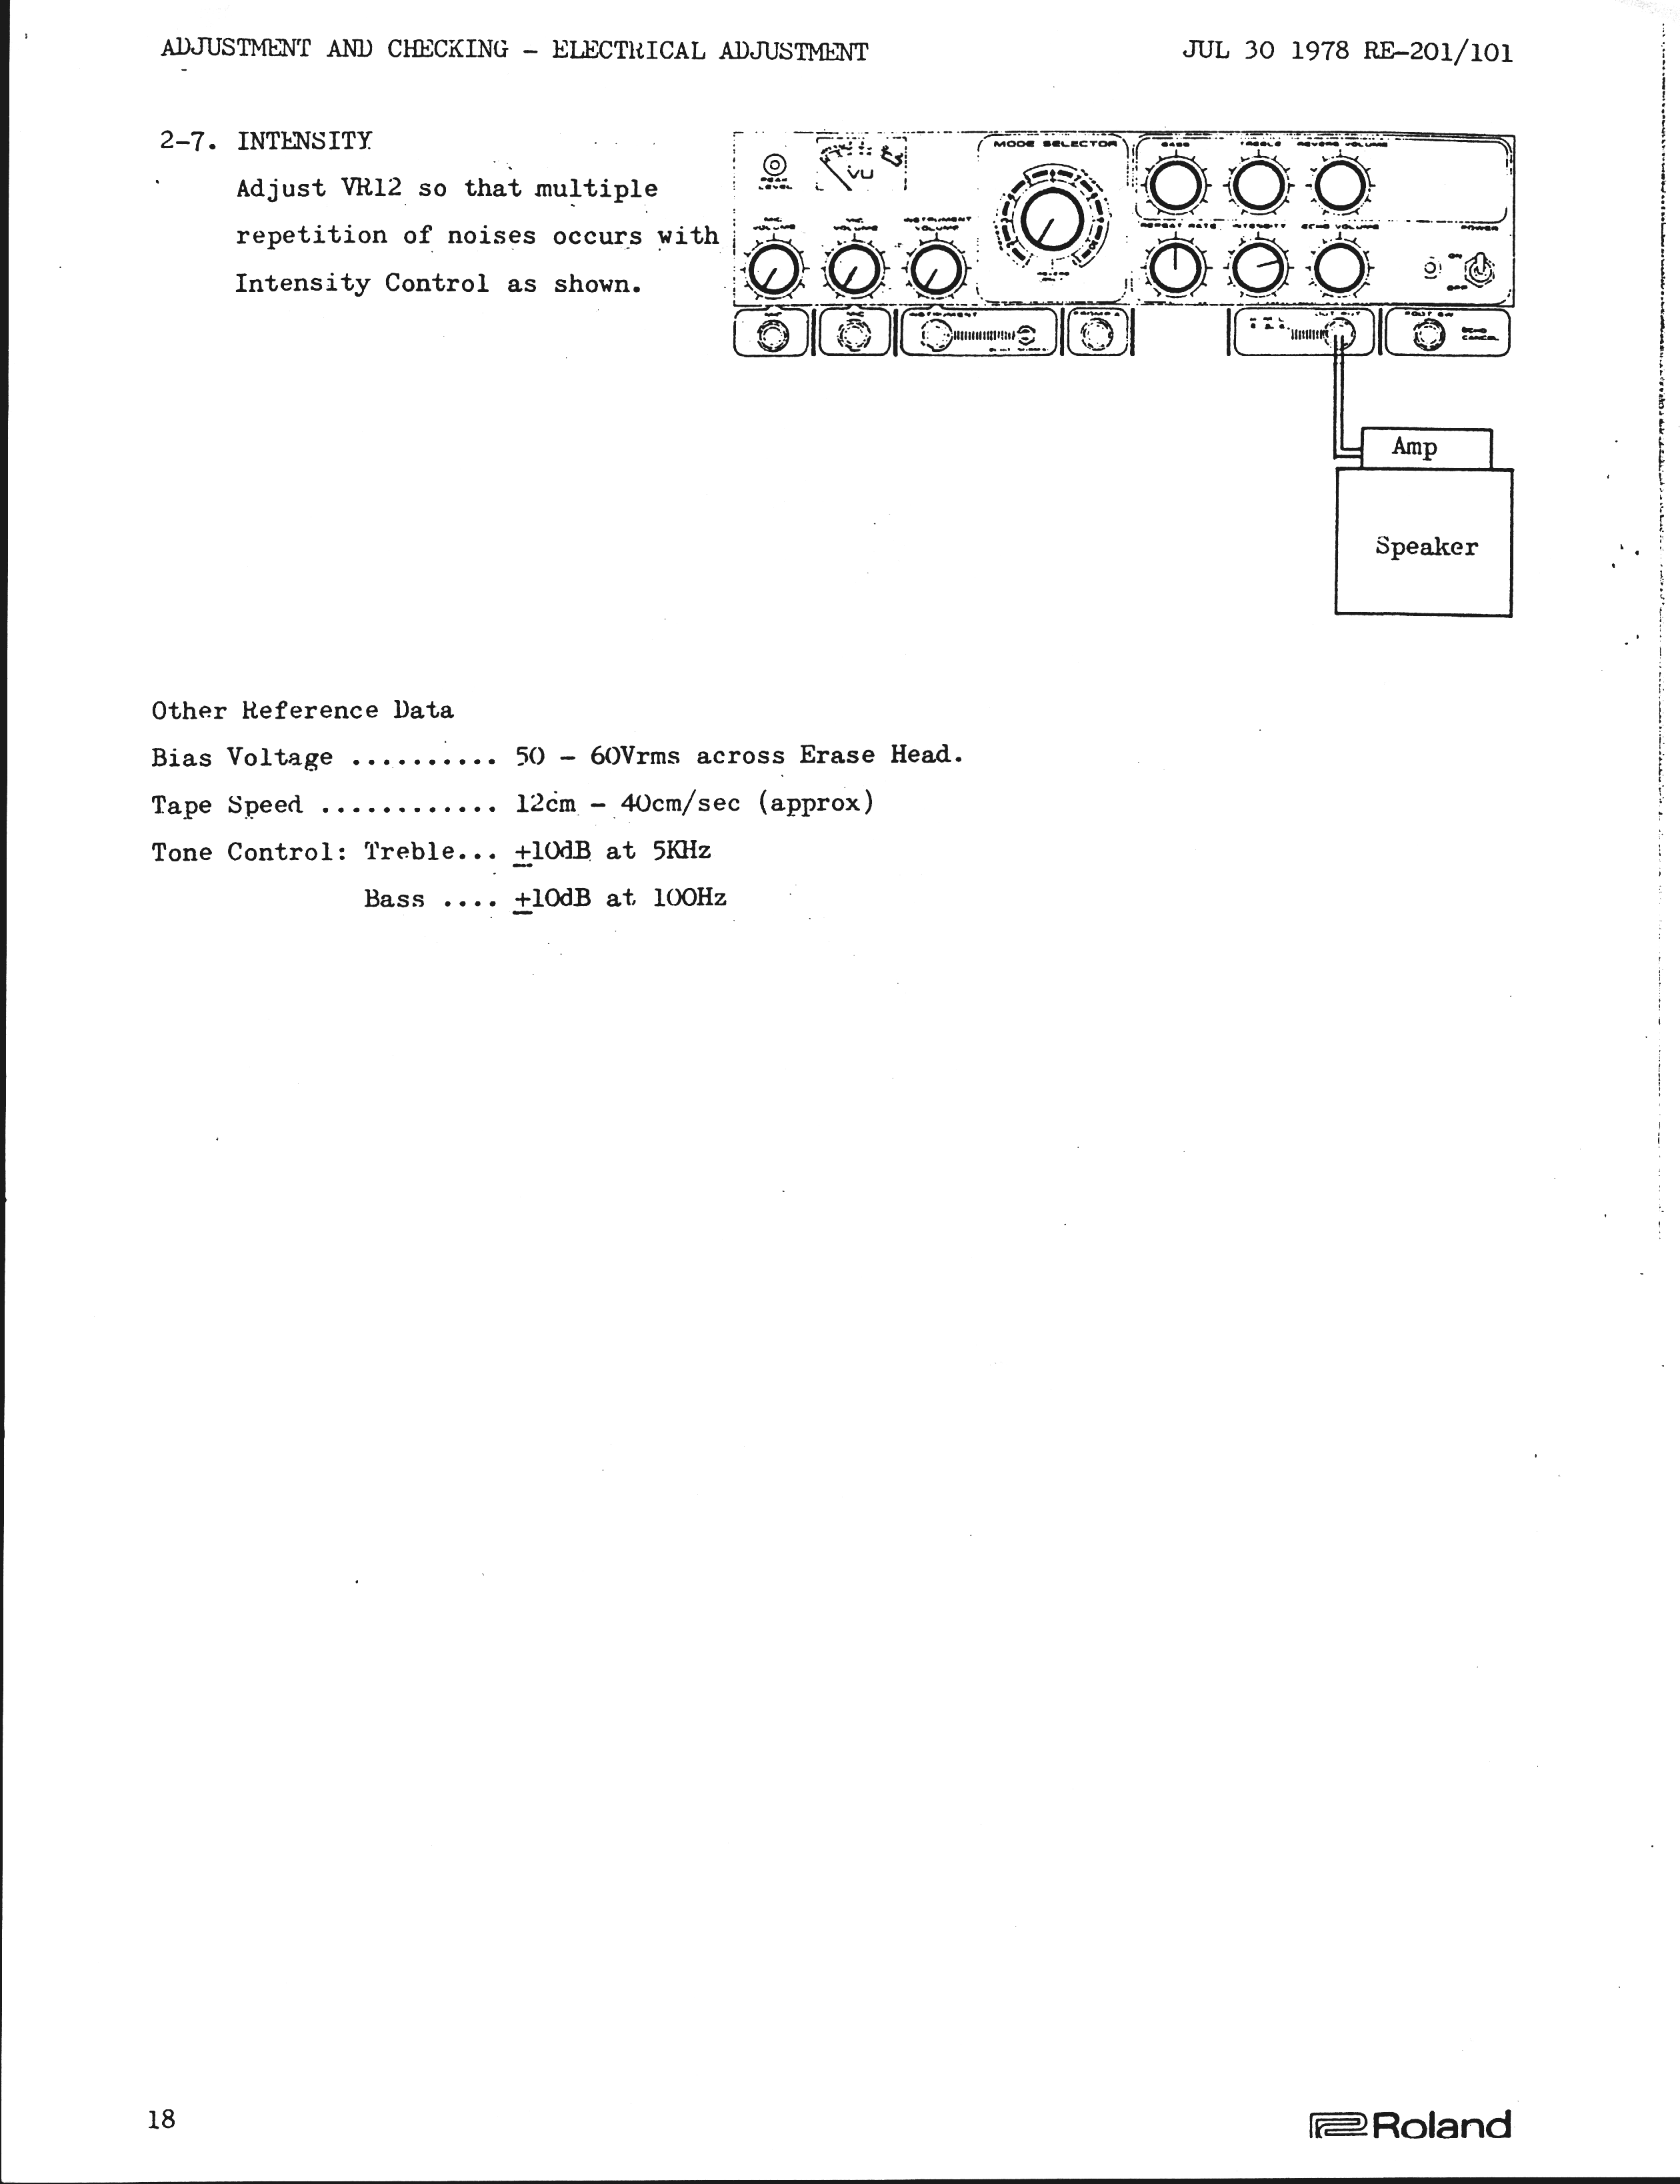 Affidavit Format For New Electricity Connection